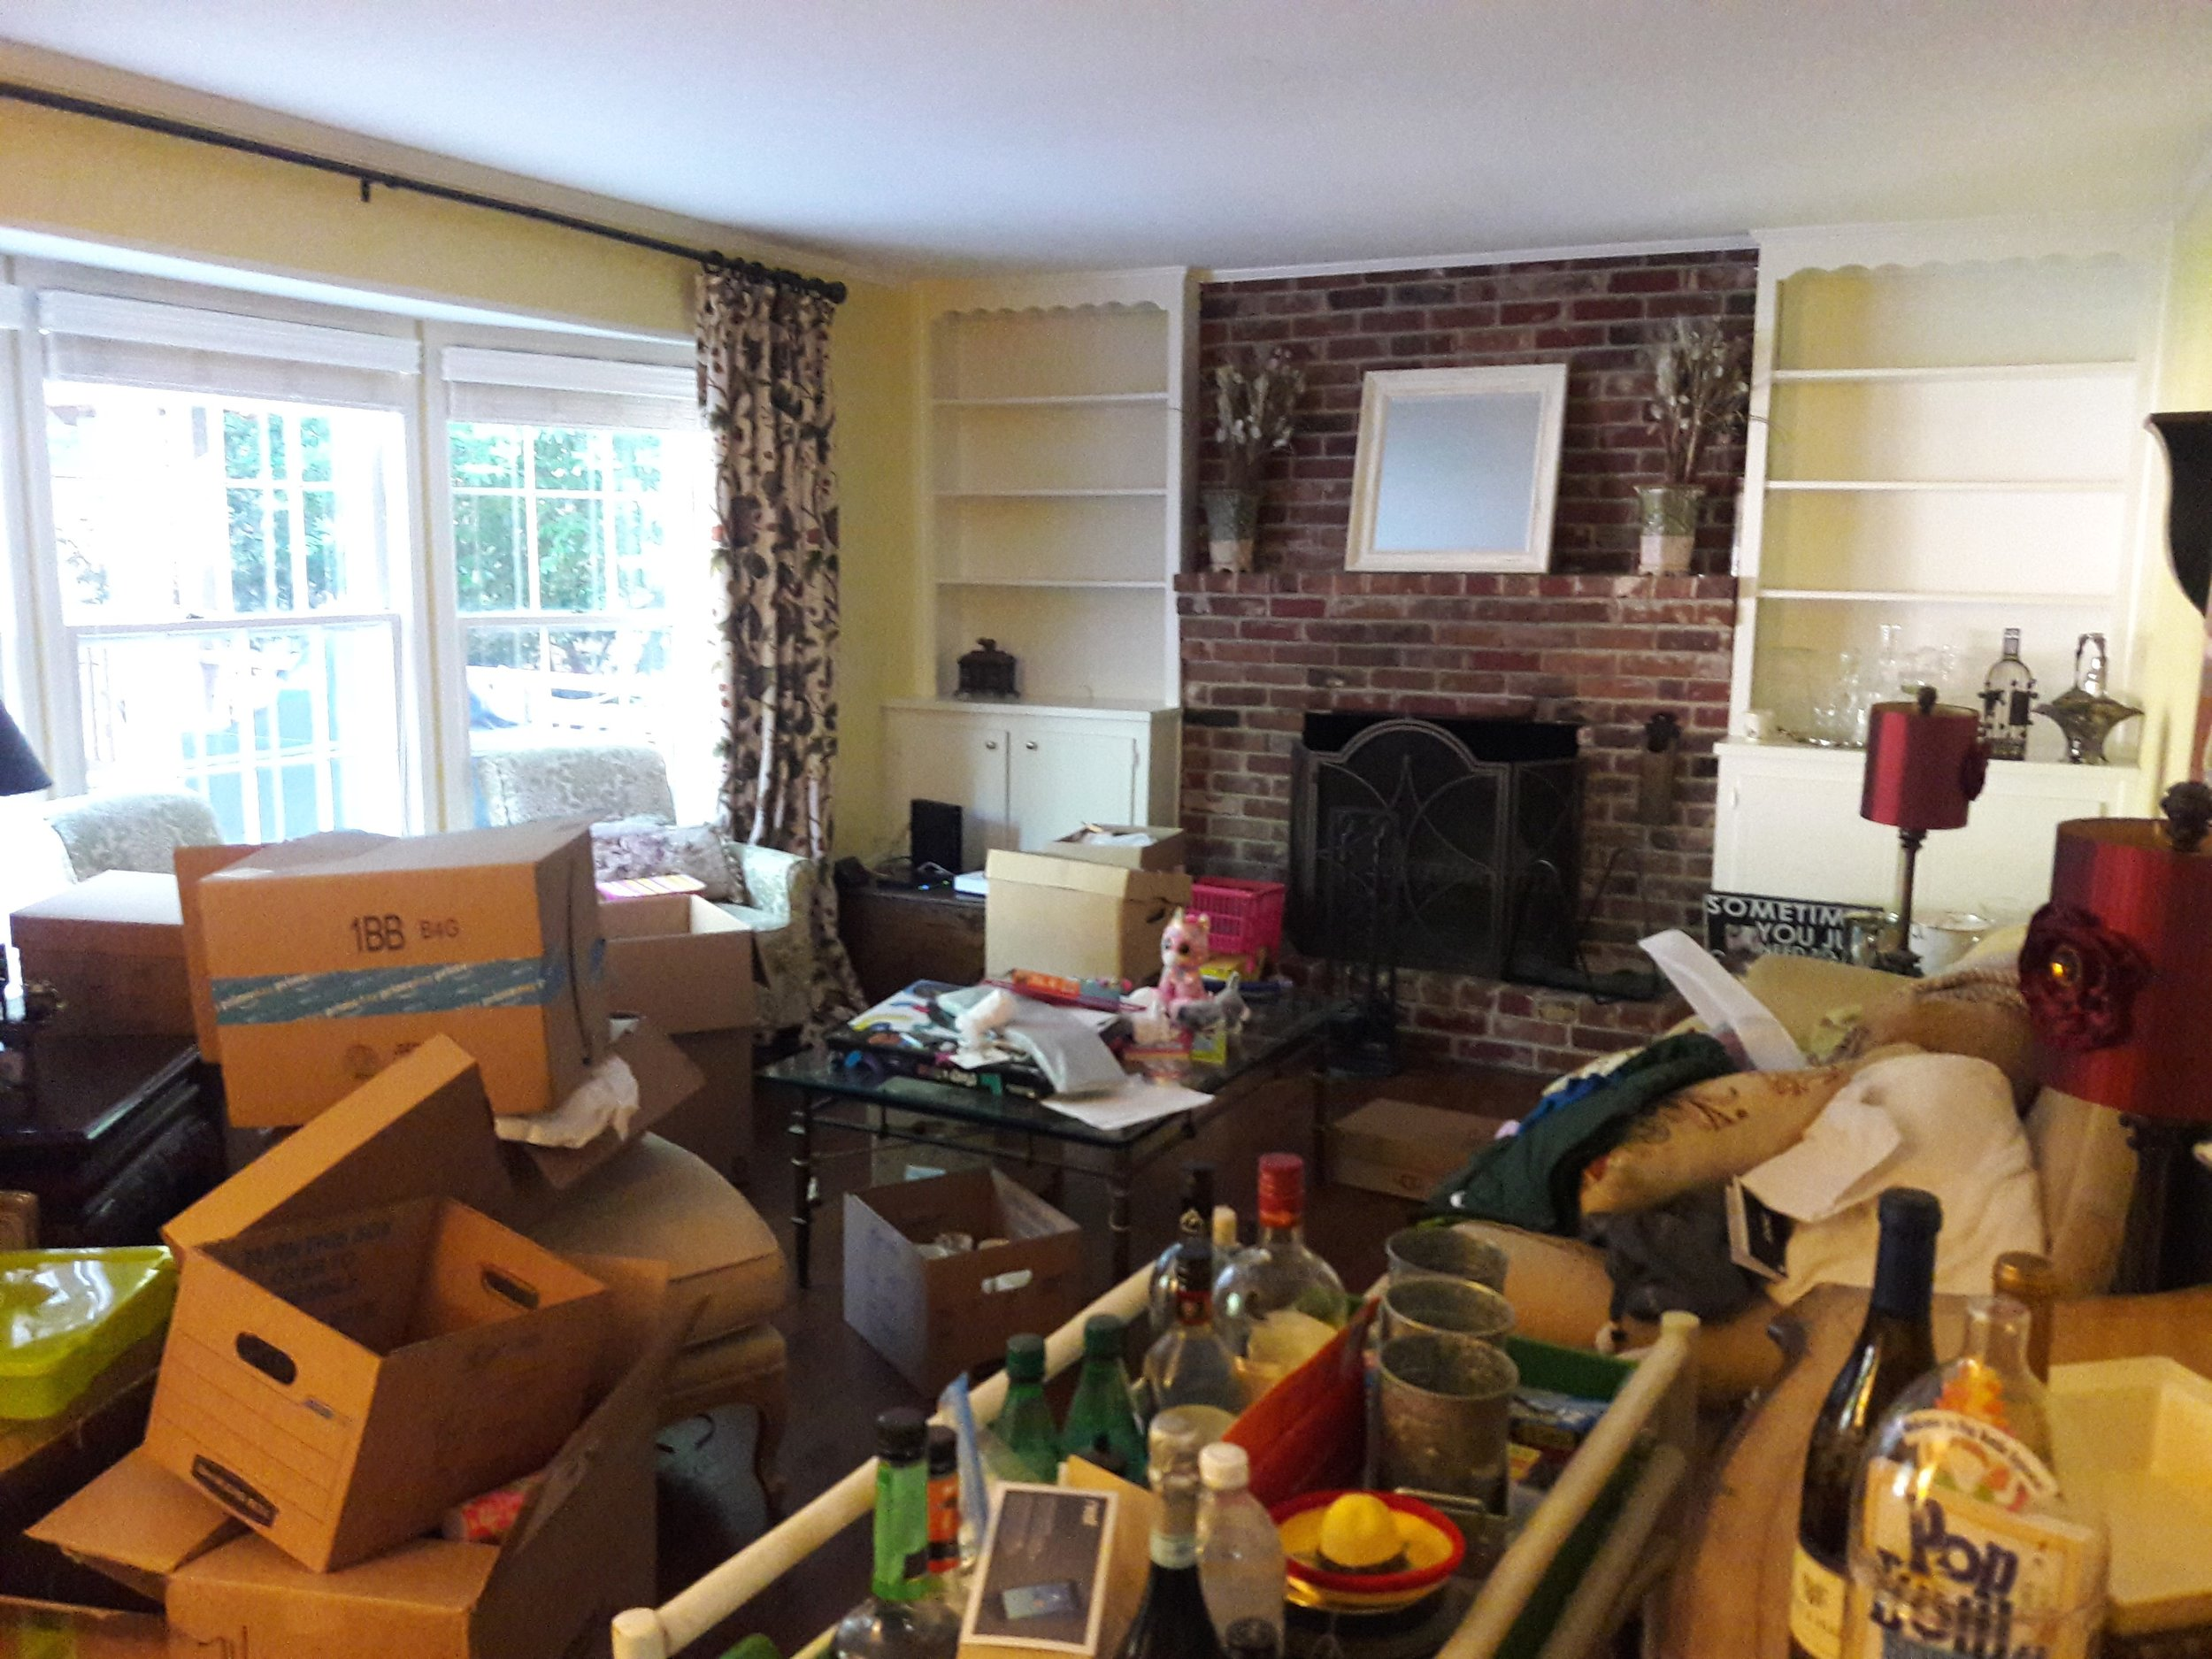 Glenrich Living Room Before.jpg